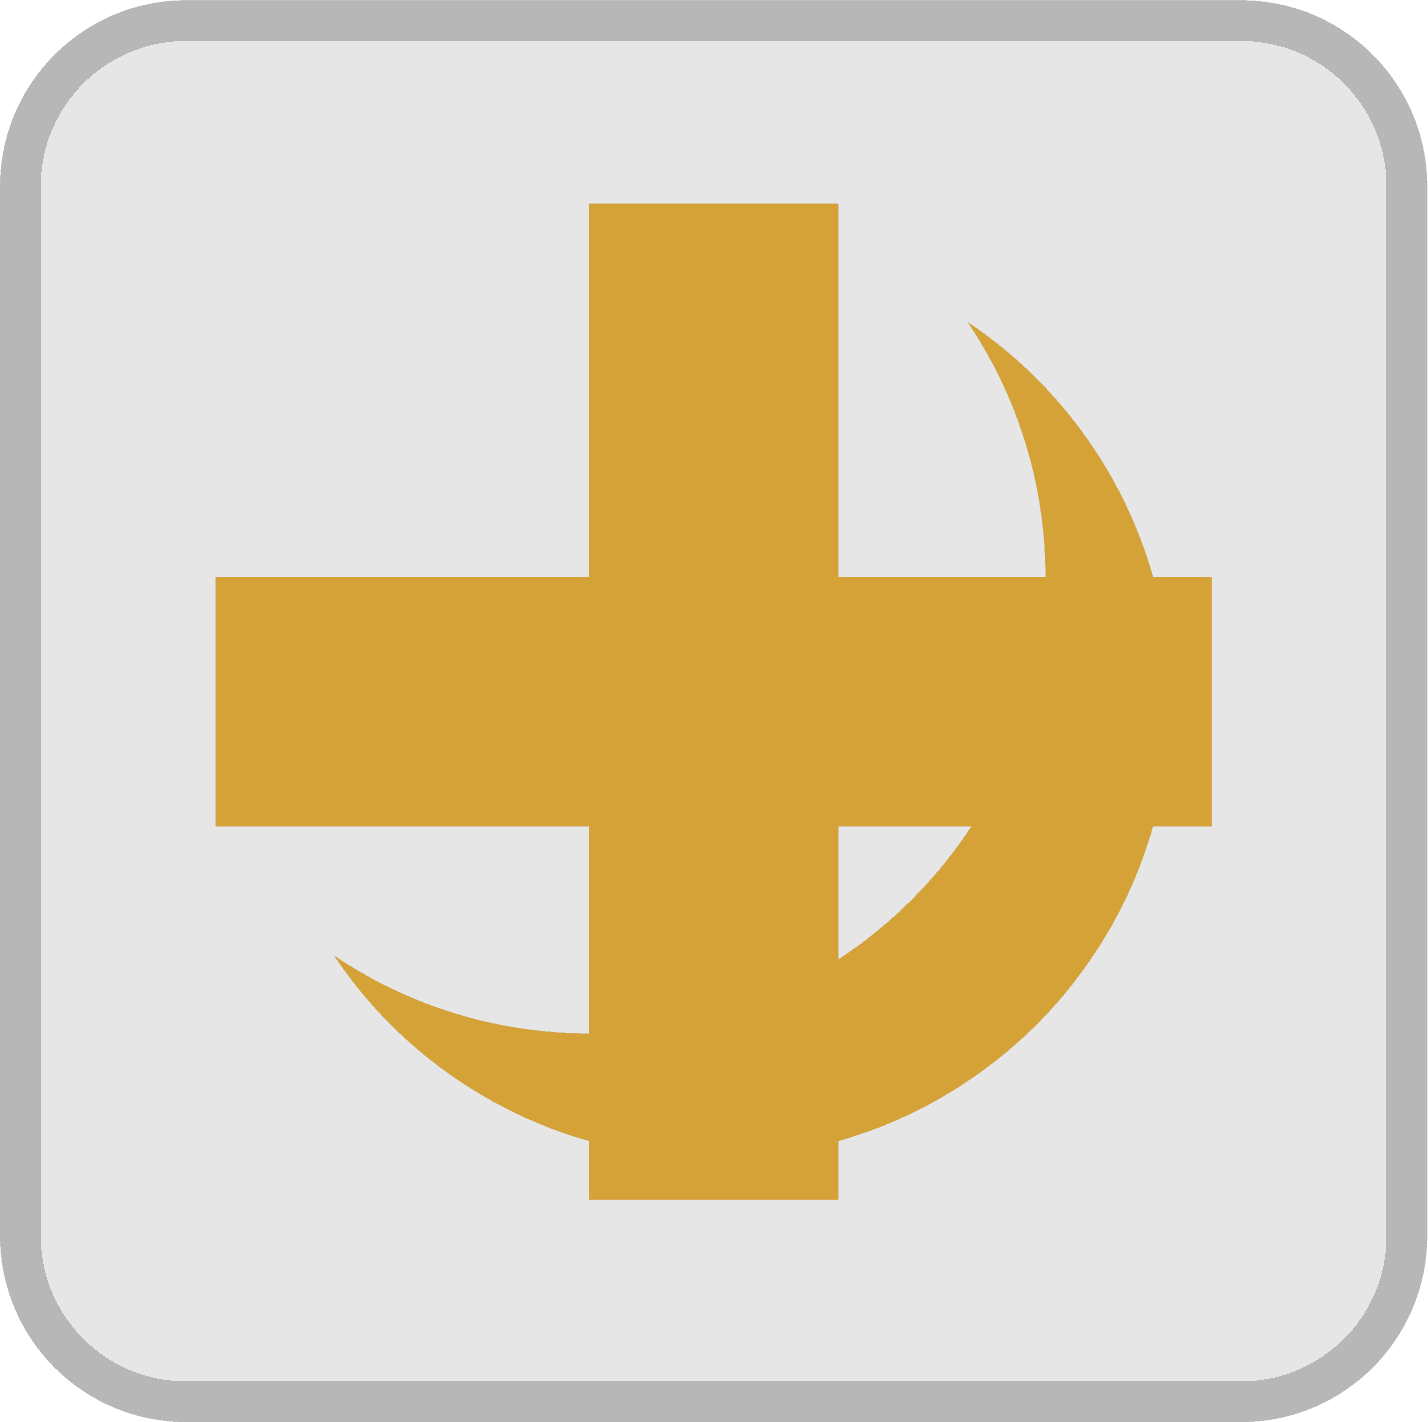 Cross and cresent